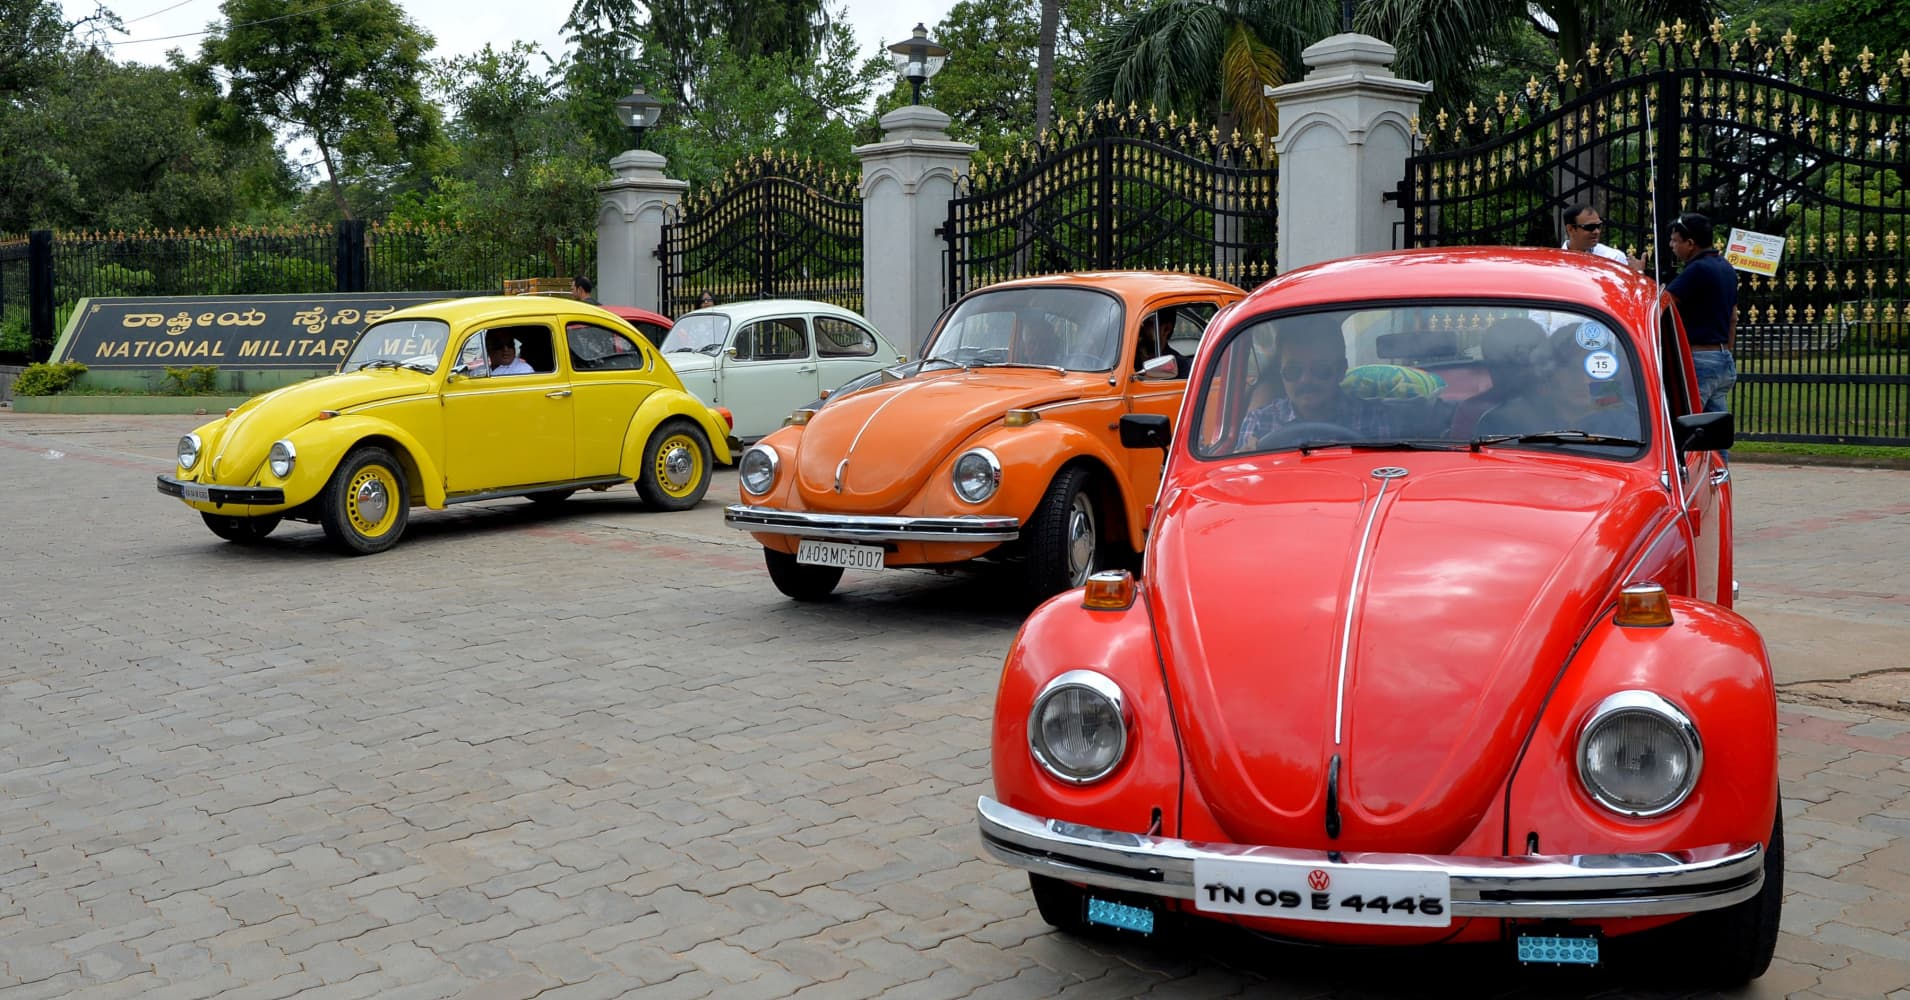 The Vw Beetle Is Dead  Again  Five Cars That Suffered The